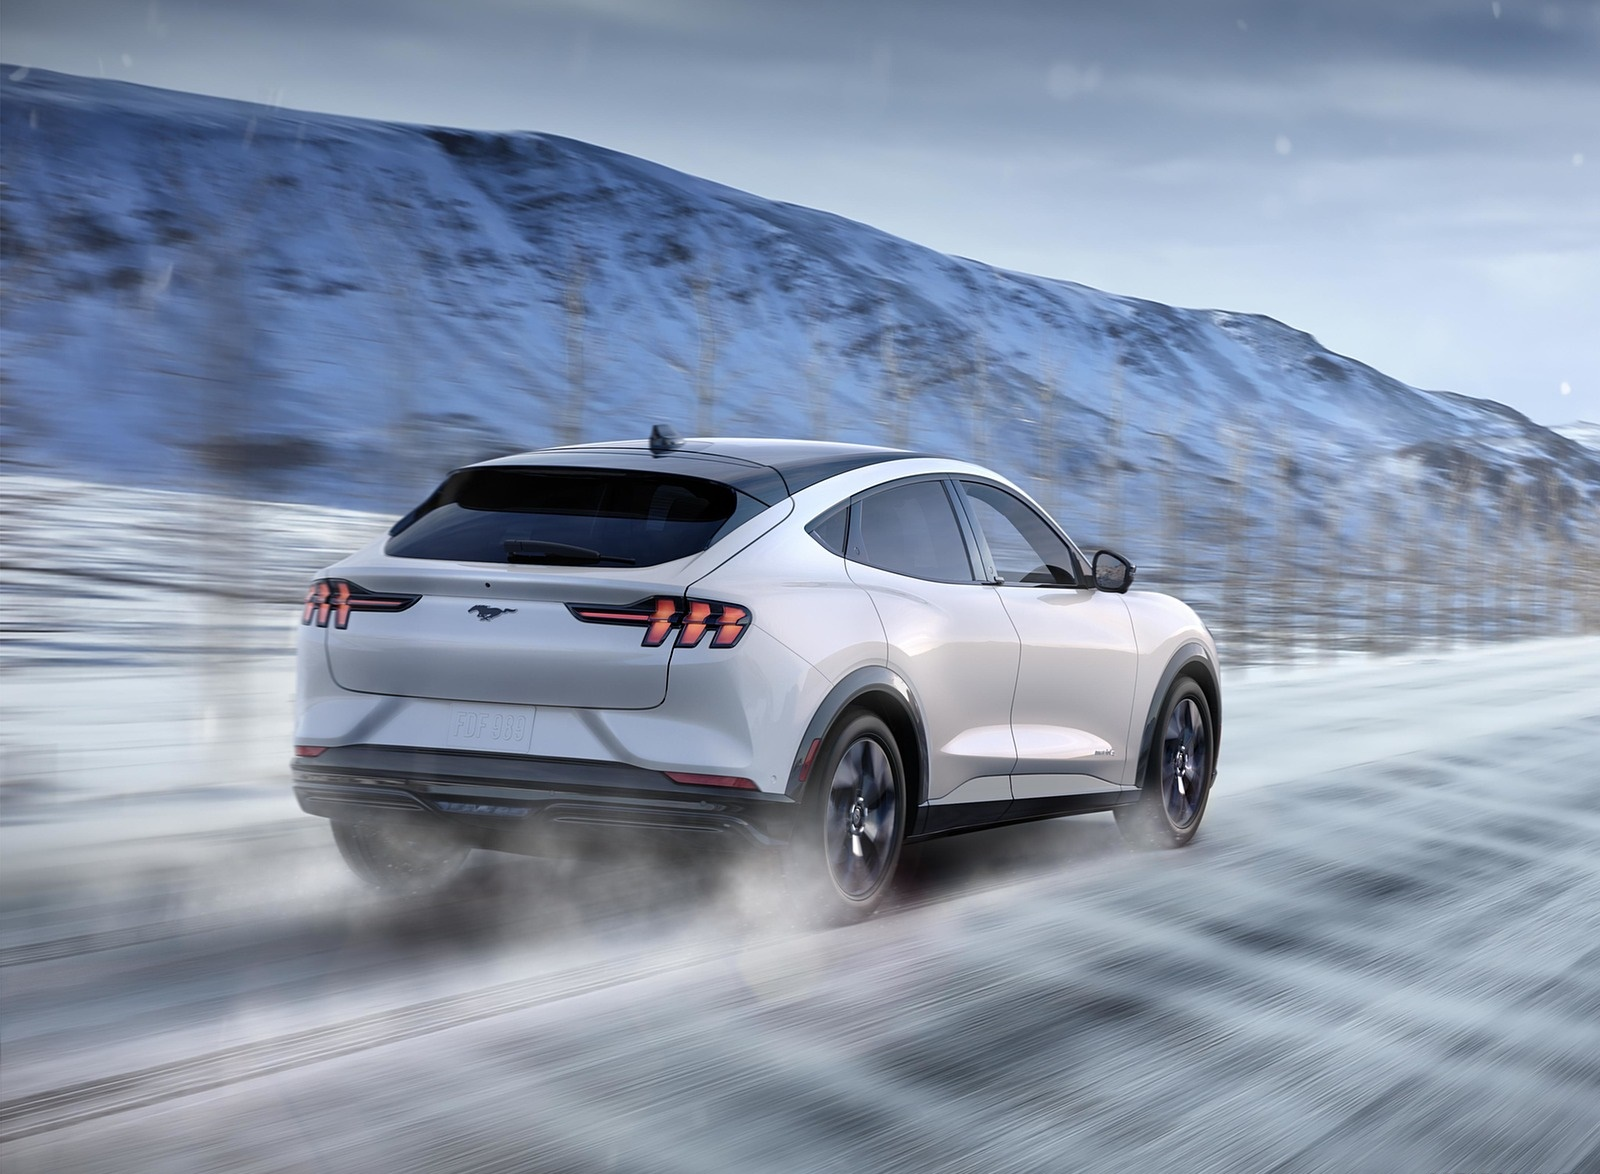 2021 Ford Mustang Mach-E Electric SUV Rear Three-Quarter Wallpapers (9)